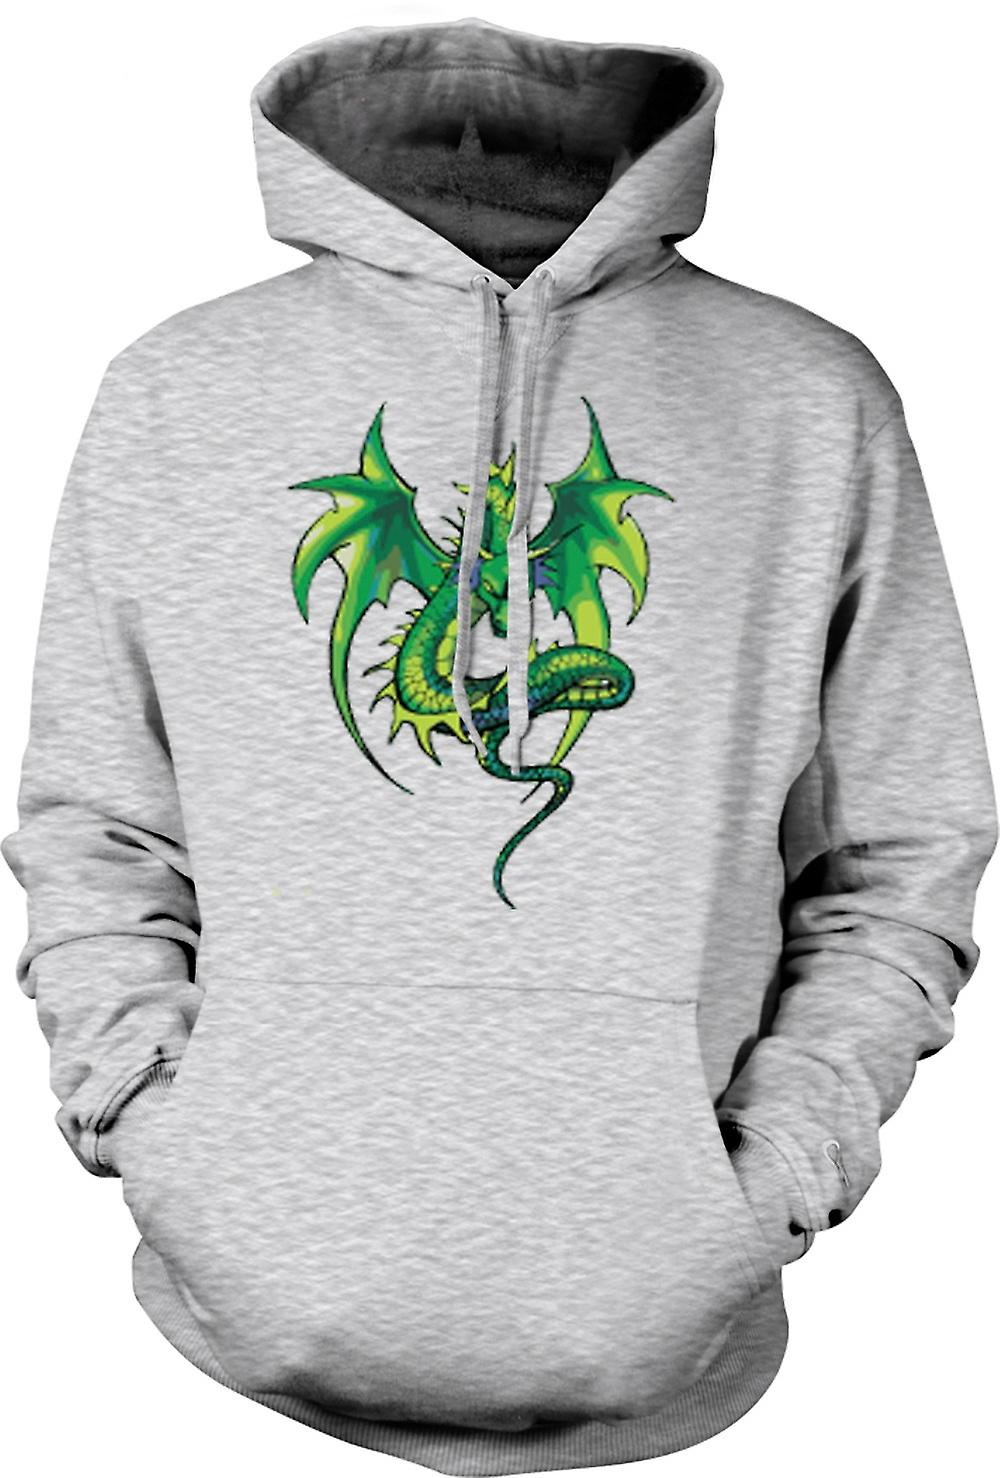 Mens Hoodie - Green Dragon Comic-Design